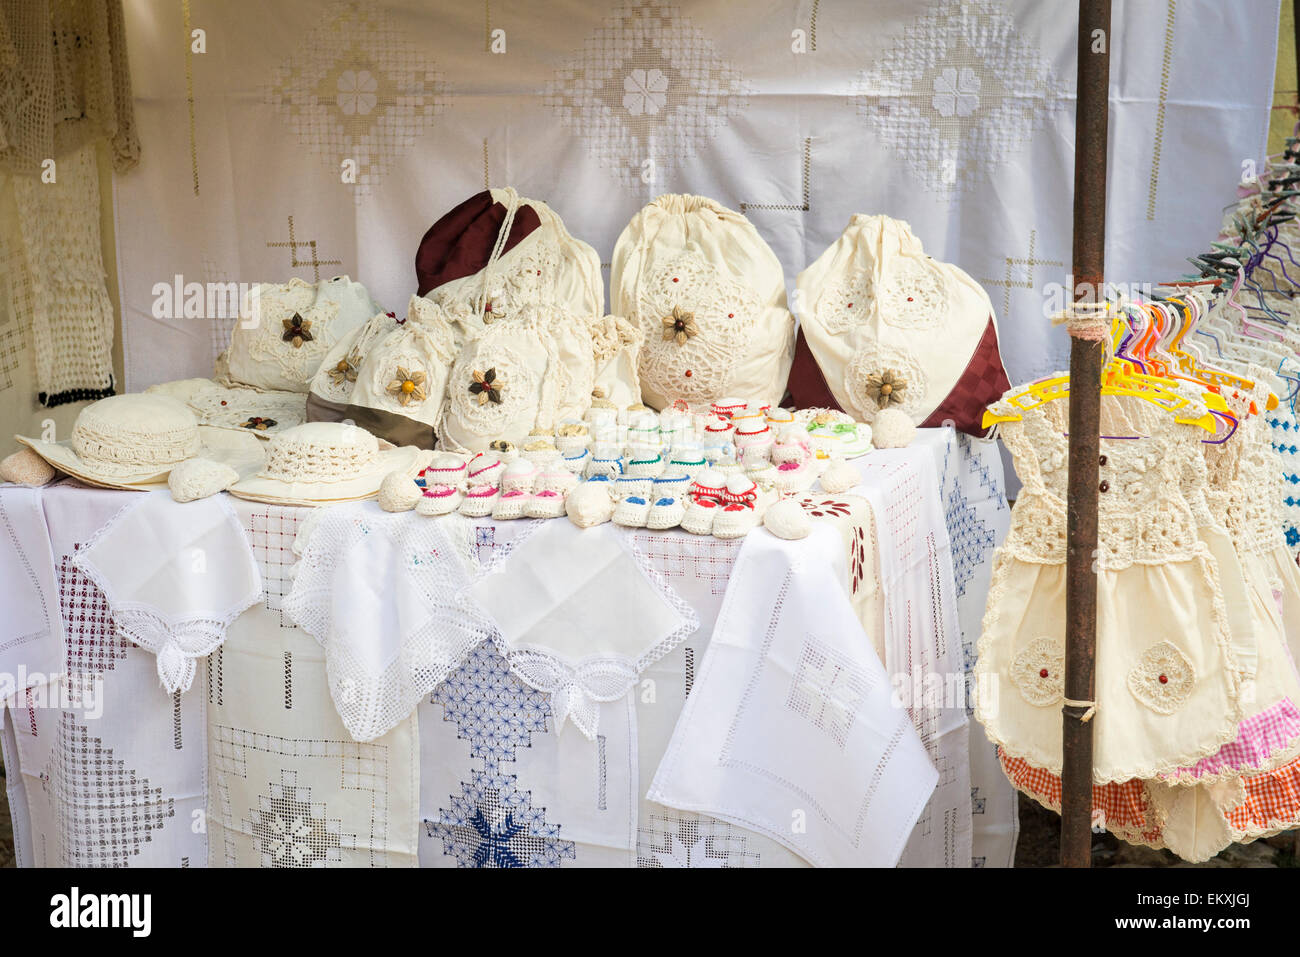 Arts and crafts table linens - Cuba Trinidad Cobbled Street Arts Craft Handicrafts Market Stall Woven Embroidered Crochet Hats Baby Dresses Booties Tablecloths